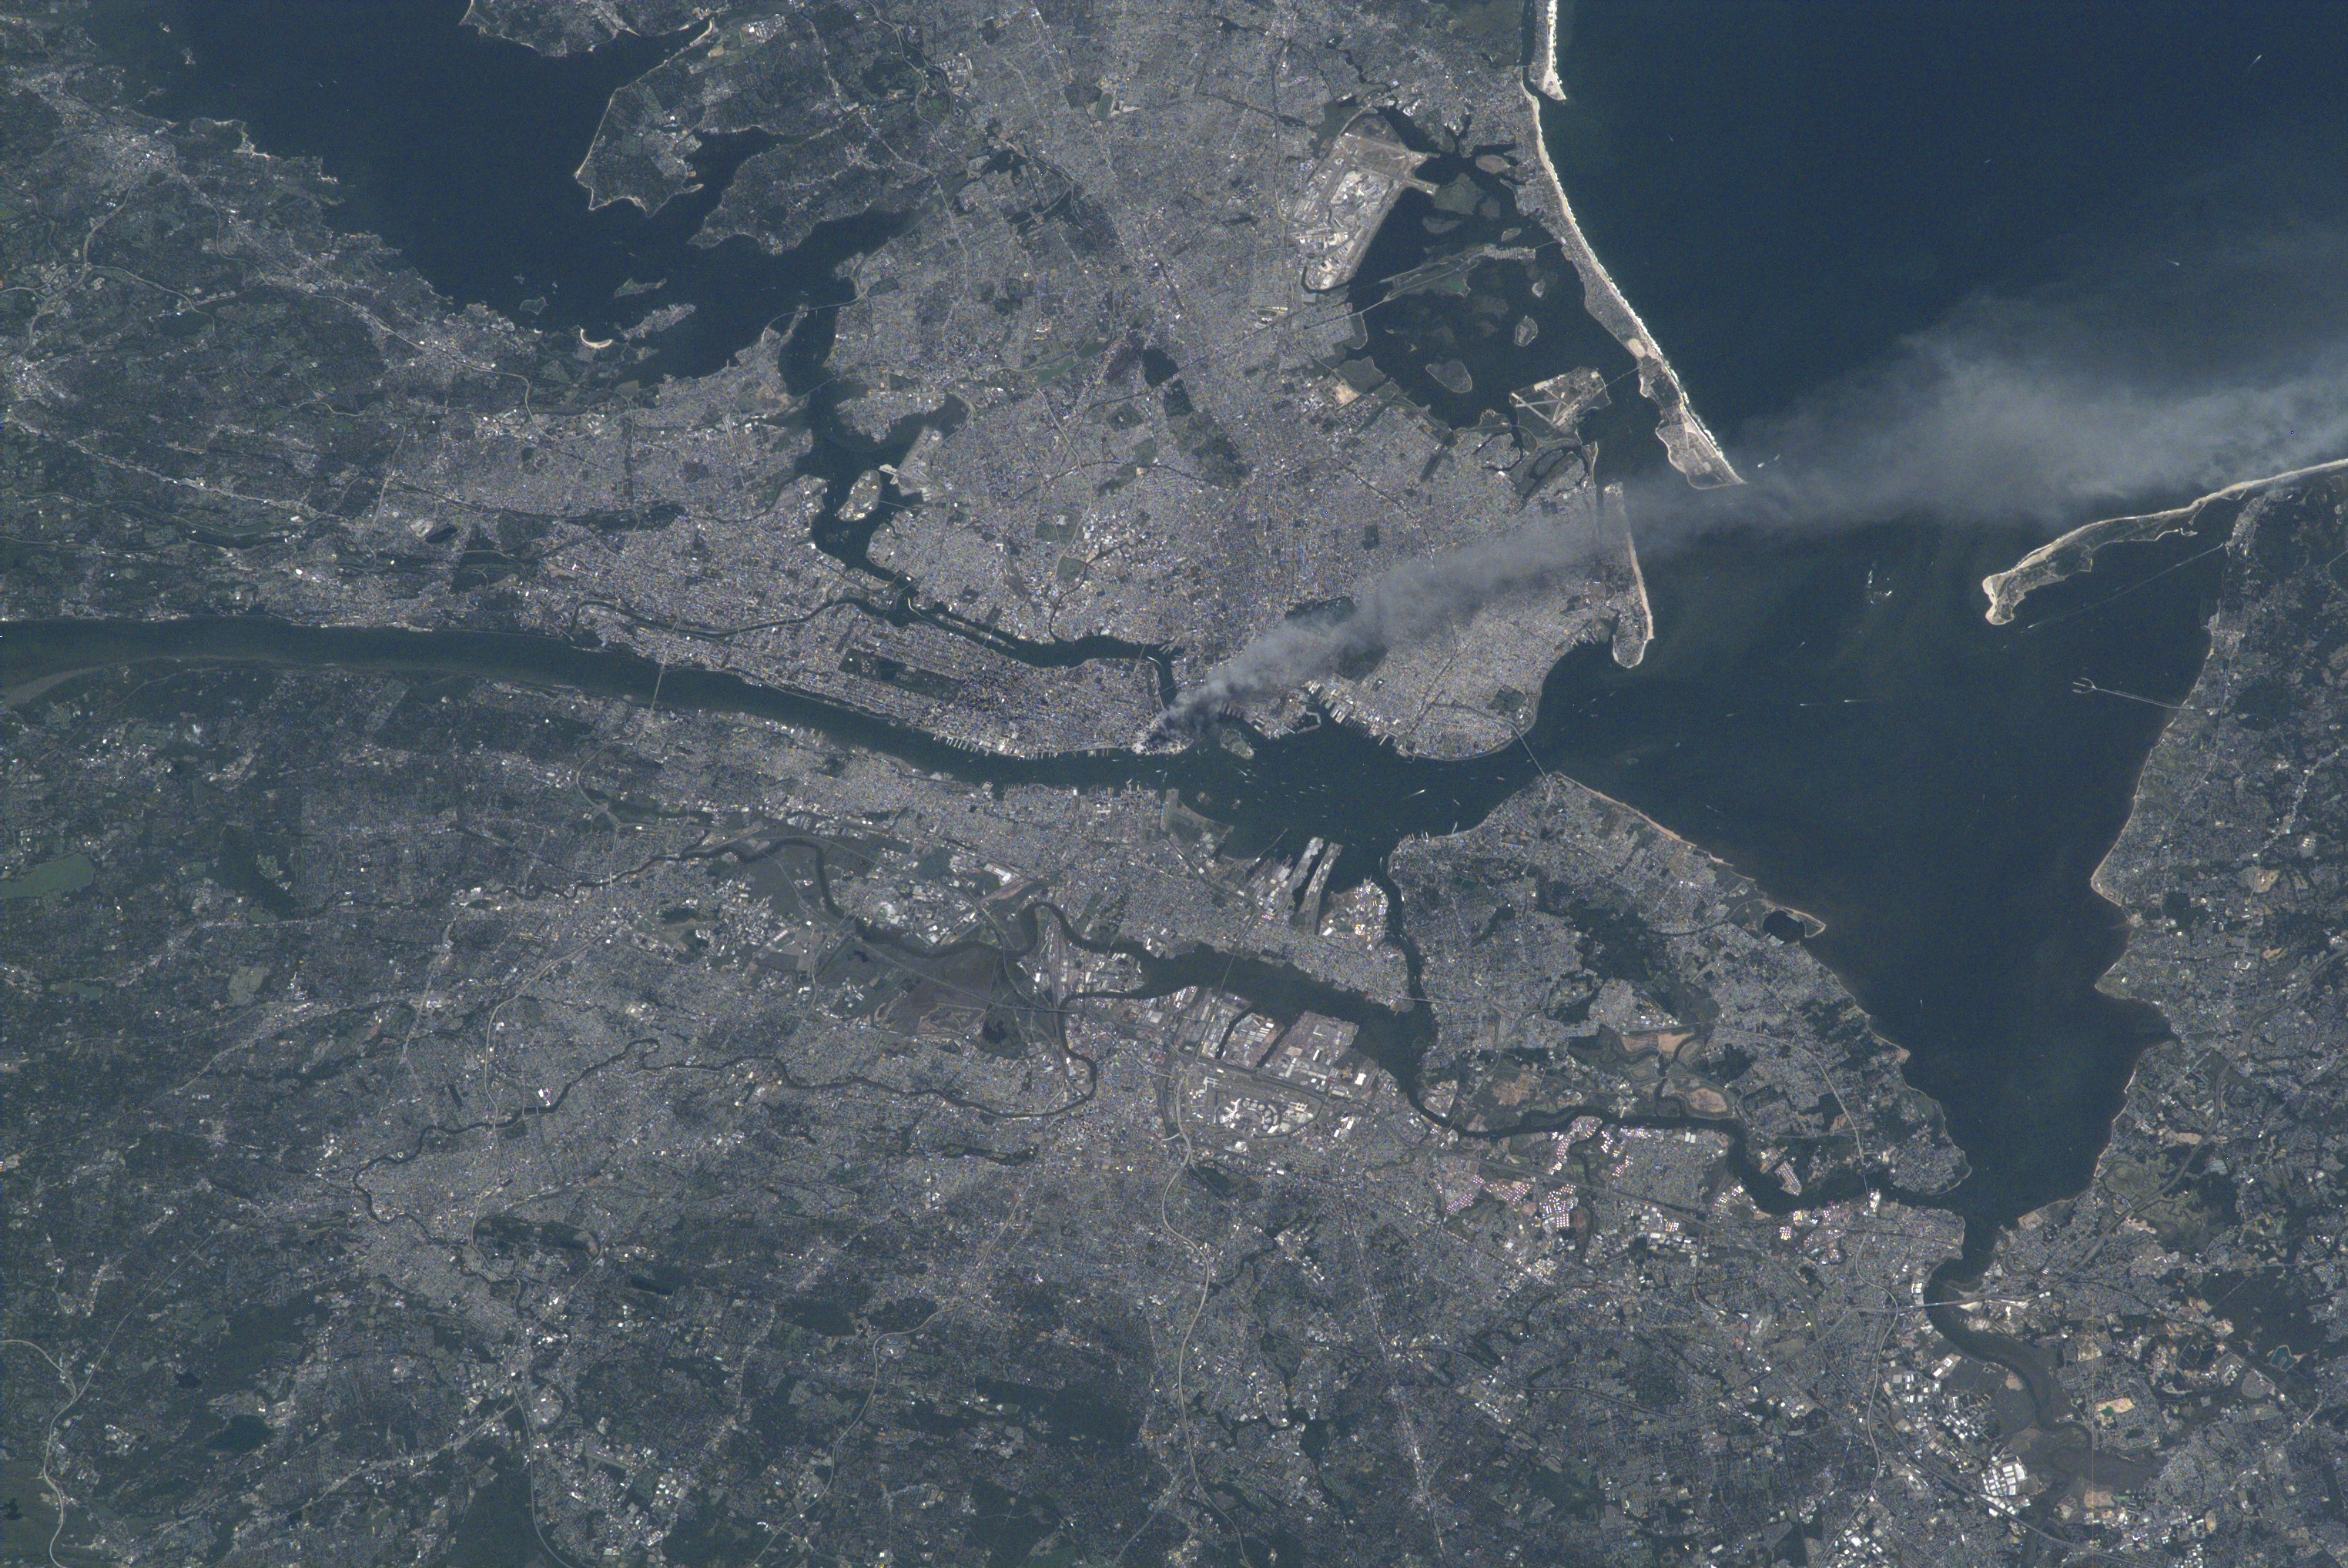 Remembering 9/11: An Astronaut's Painful View From Space